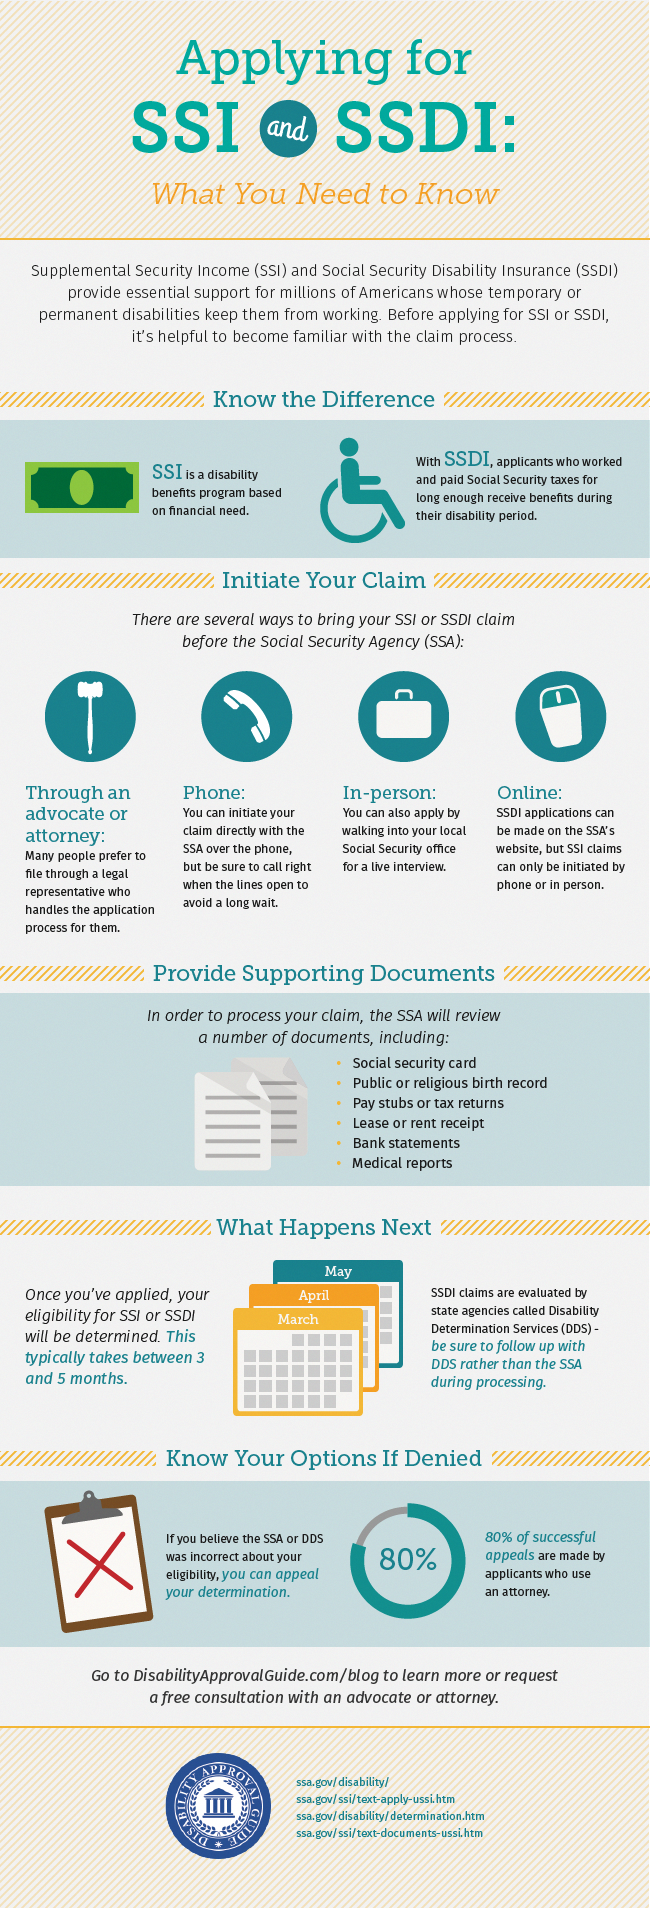 Tips To Help You Apply For Ssi And Ssdi Benefits Social Security Disability Benefits Social Security Disability Disability